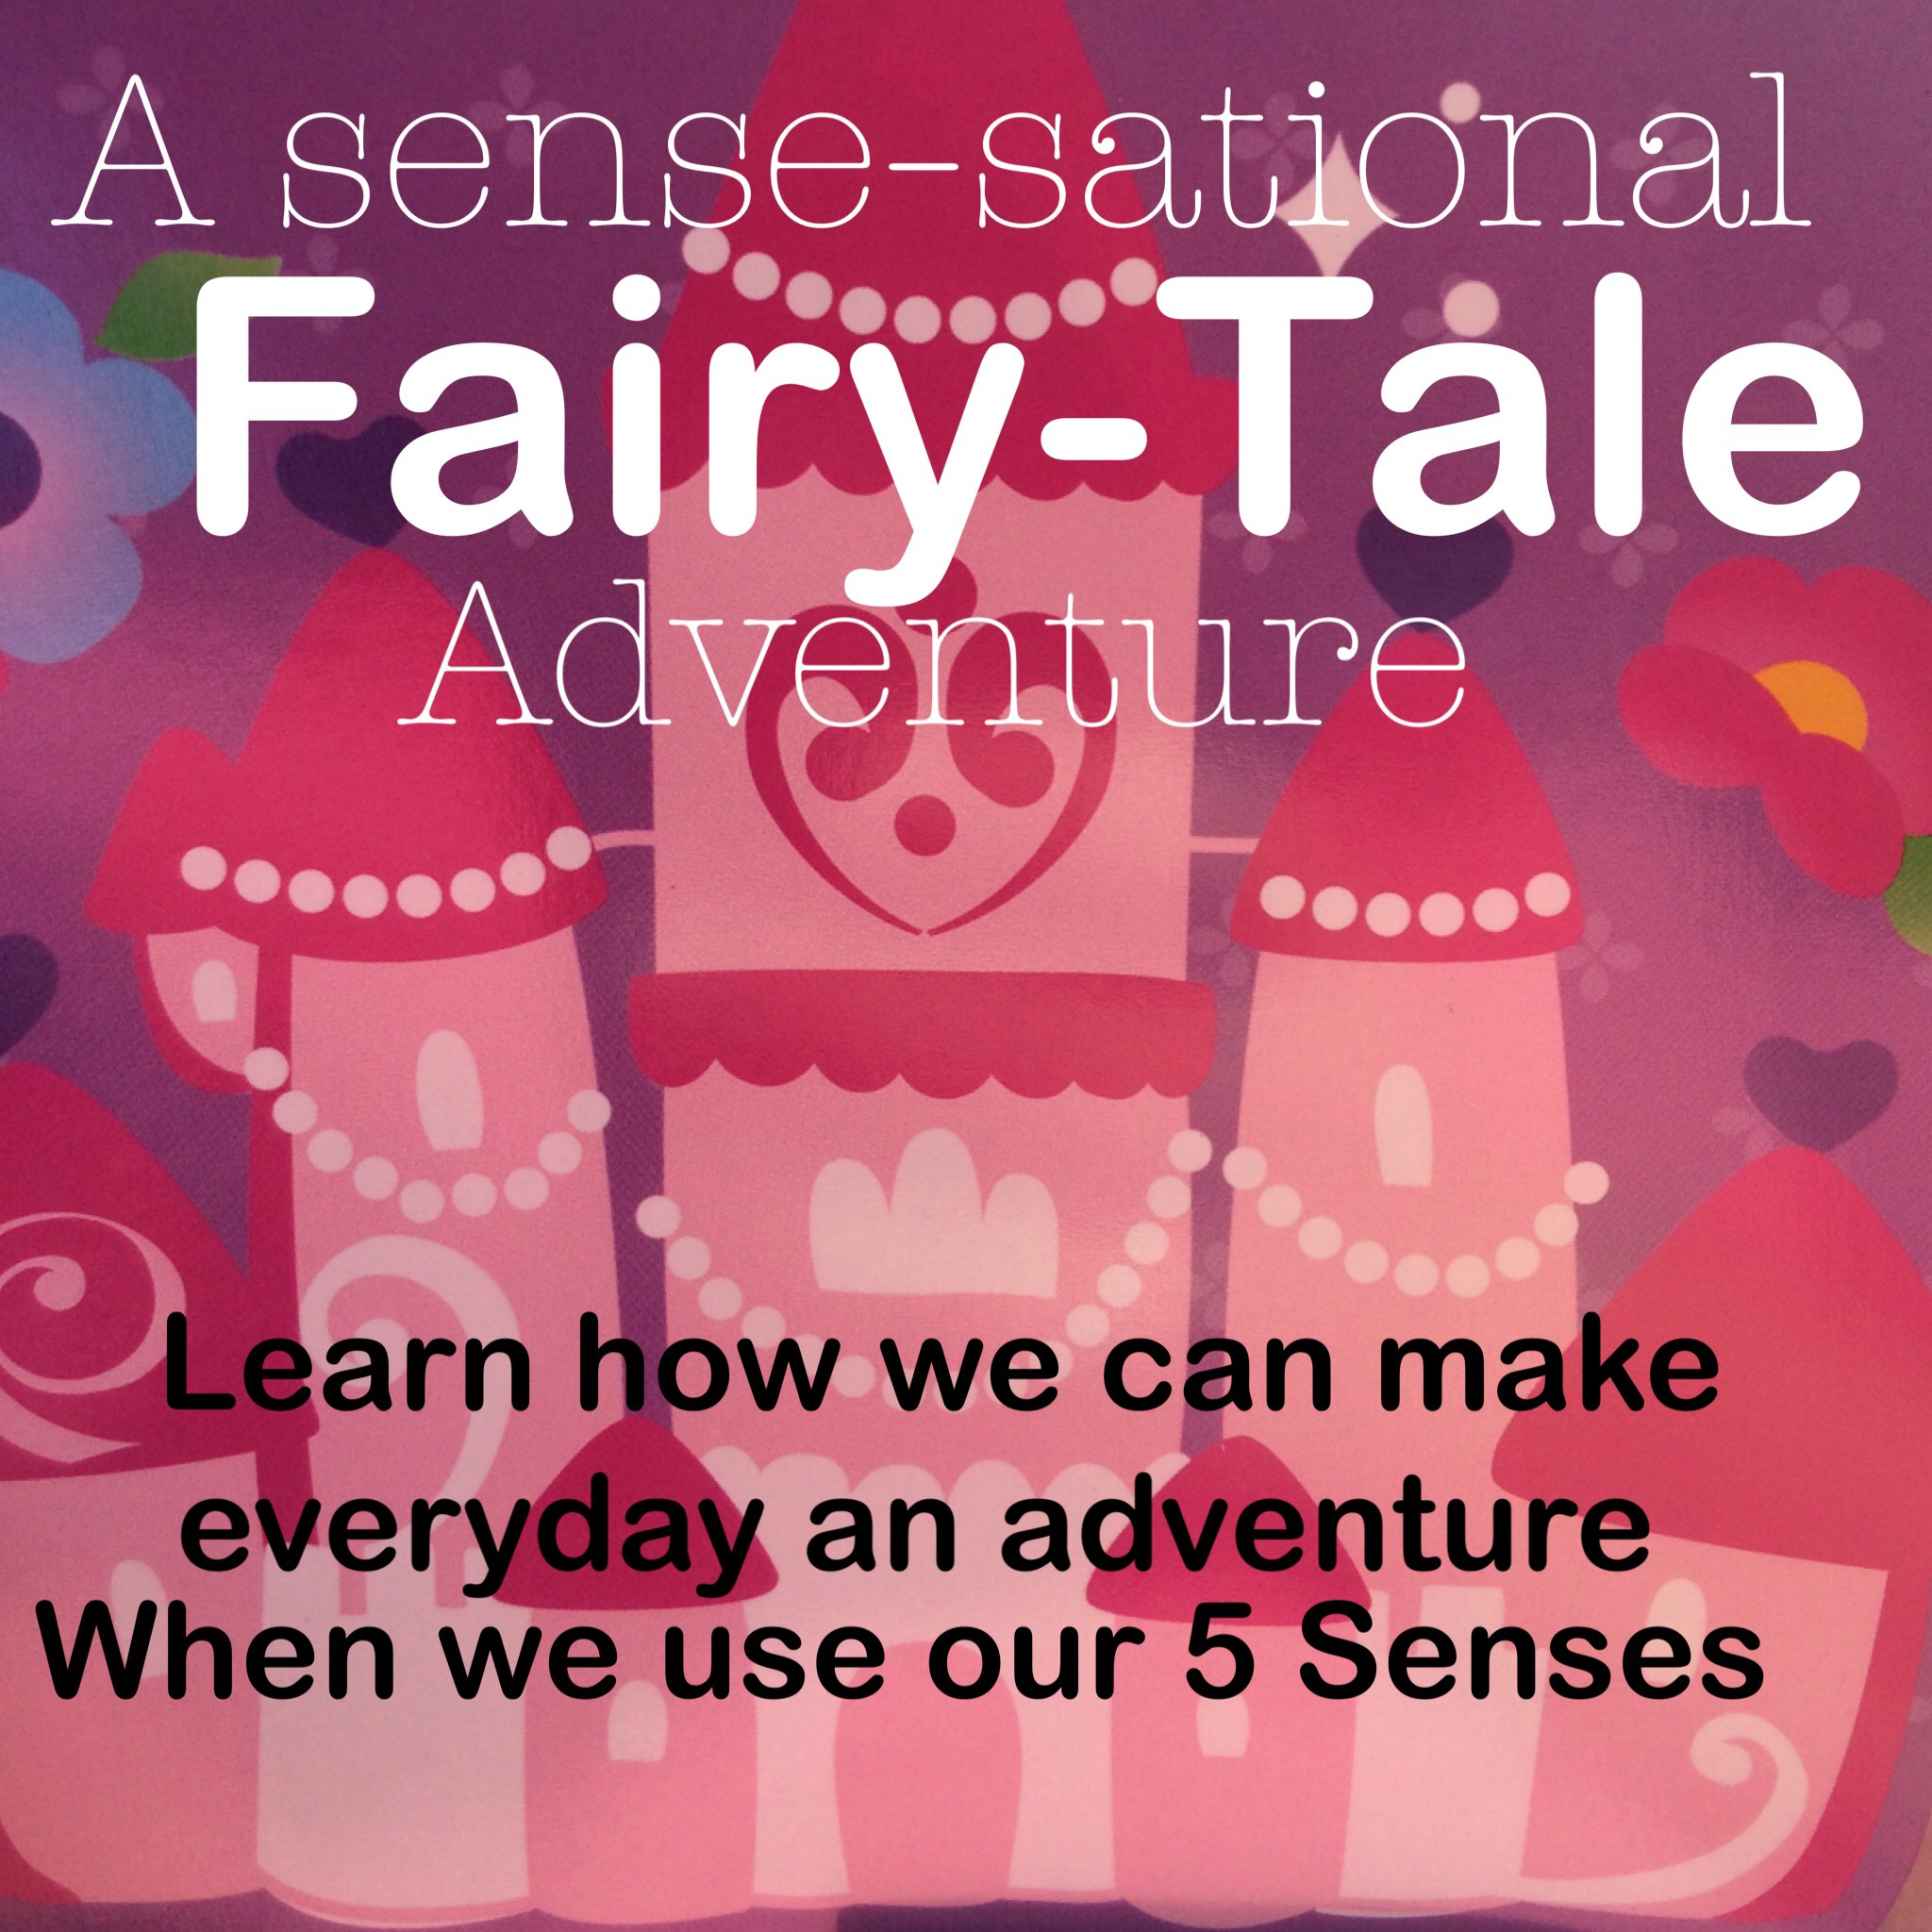 Showing My DisneySide With a Sense-Sational Fairytale Adventure